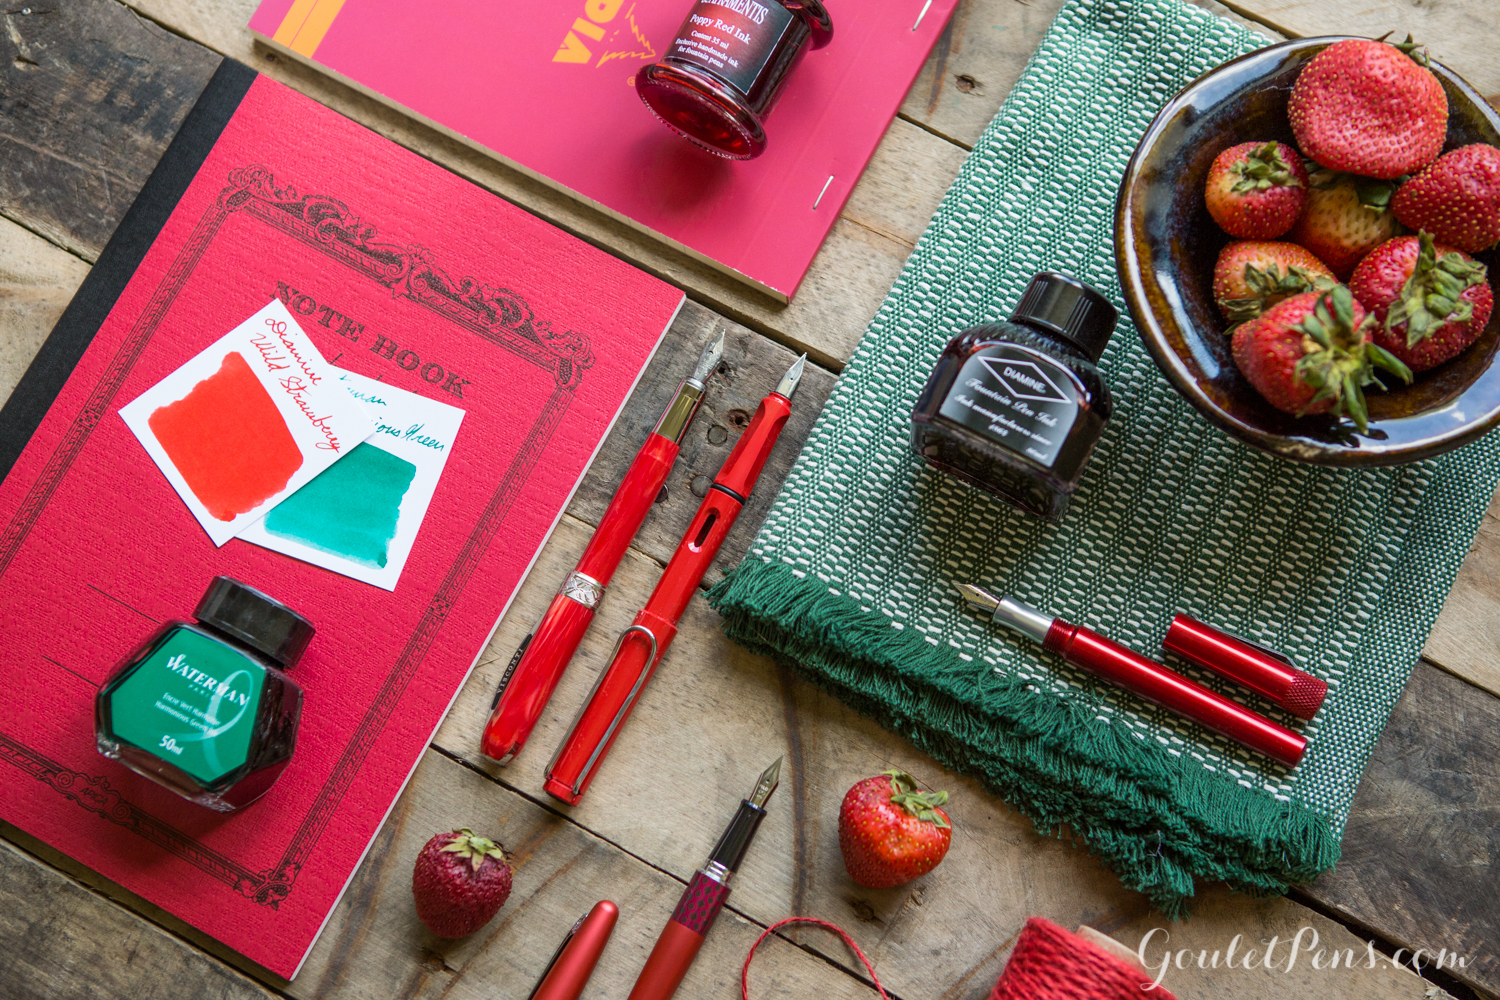 Pilot Metropolitan in a strawberry themed flat lay arrangement of fountain pens, notebooks, and ink in an array of reds and green colors.